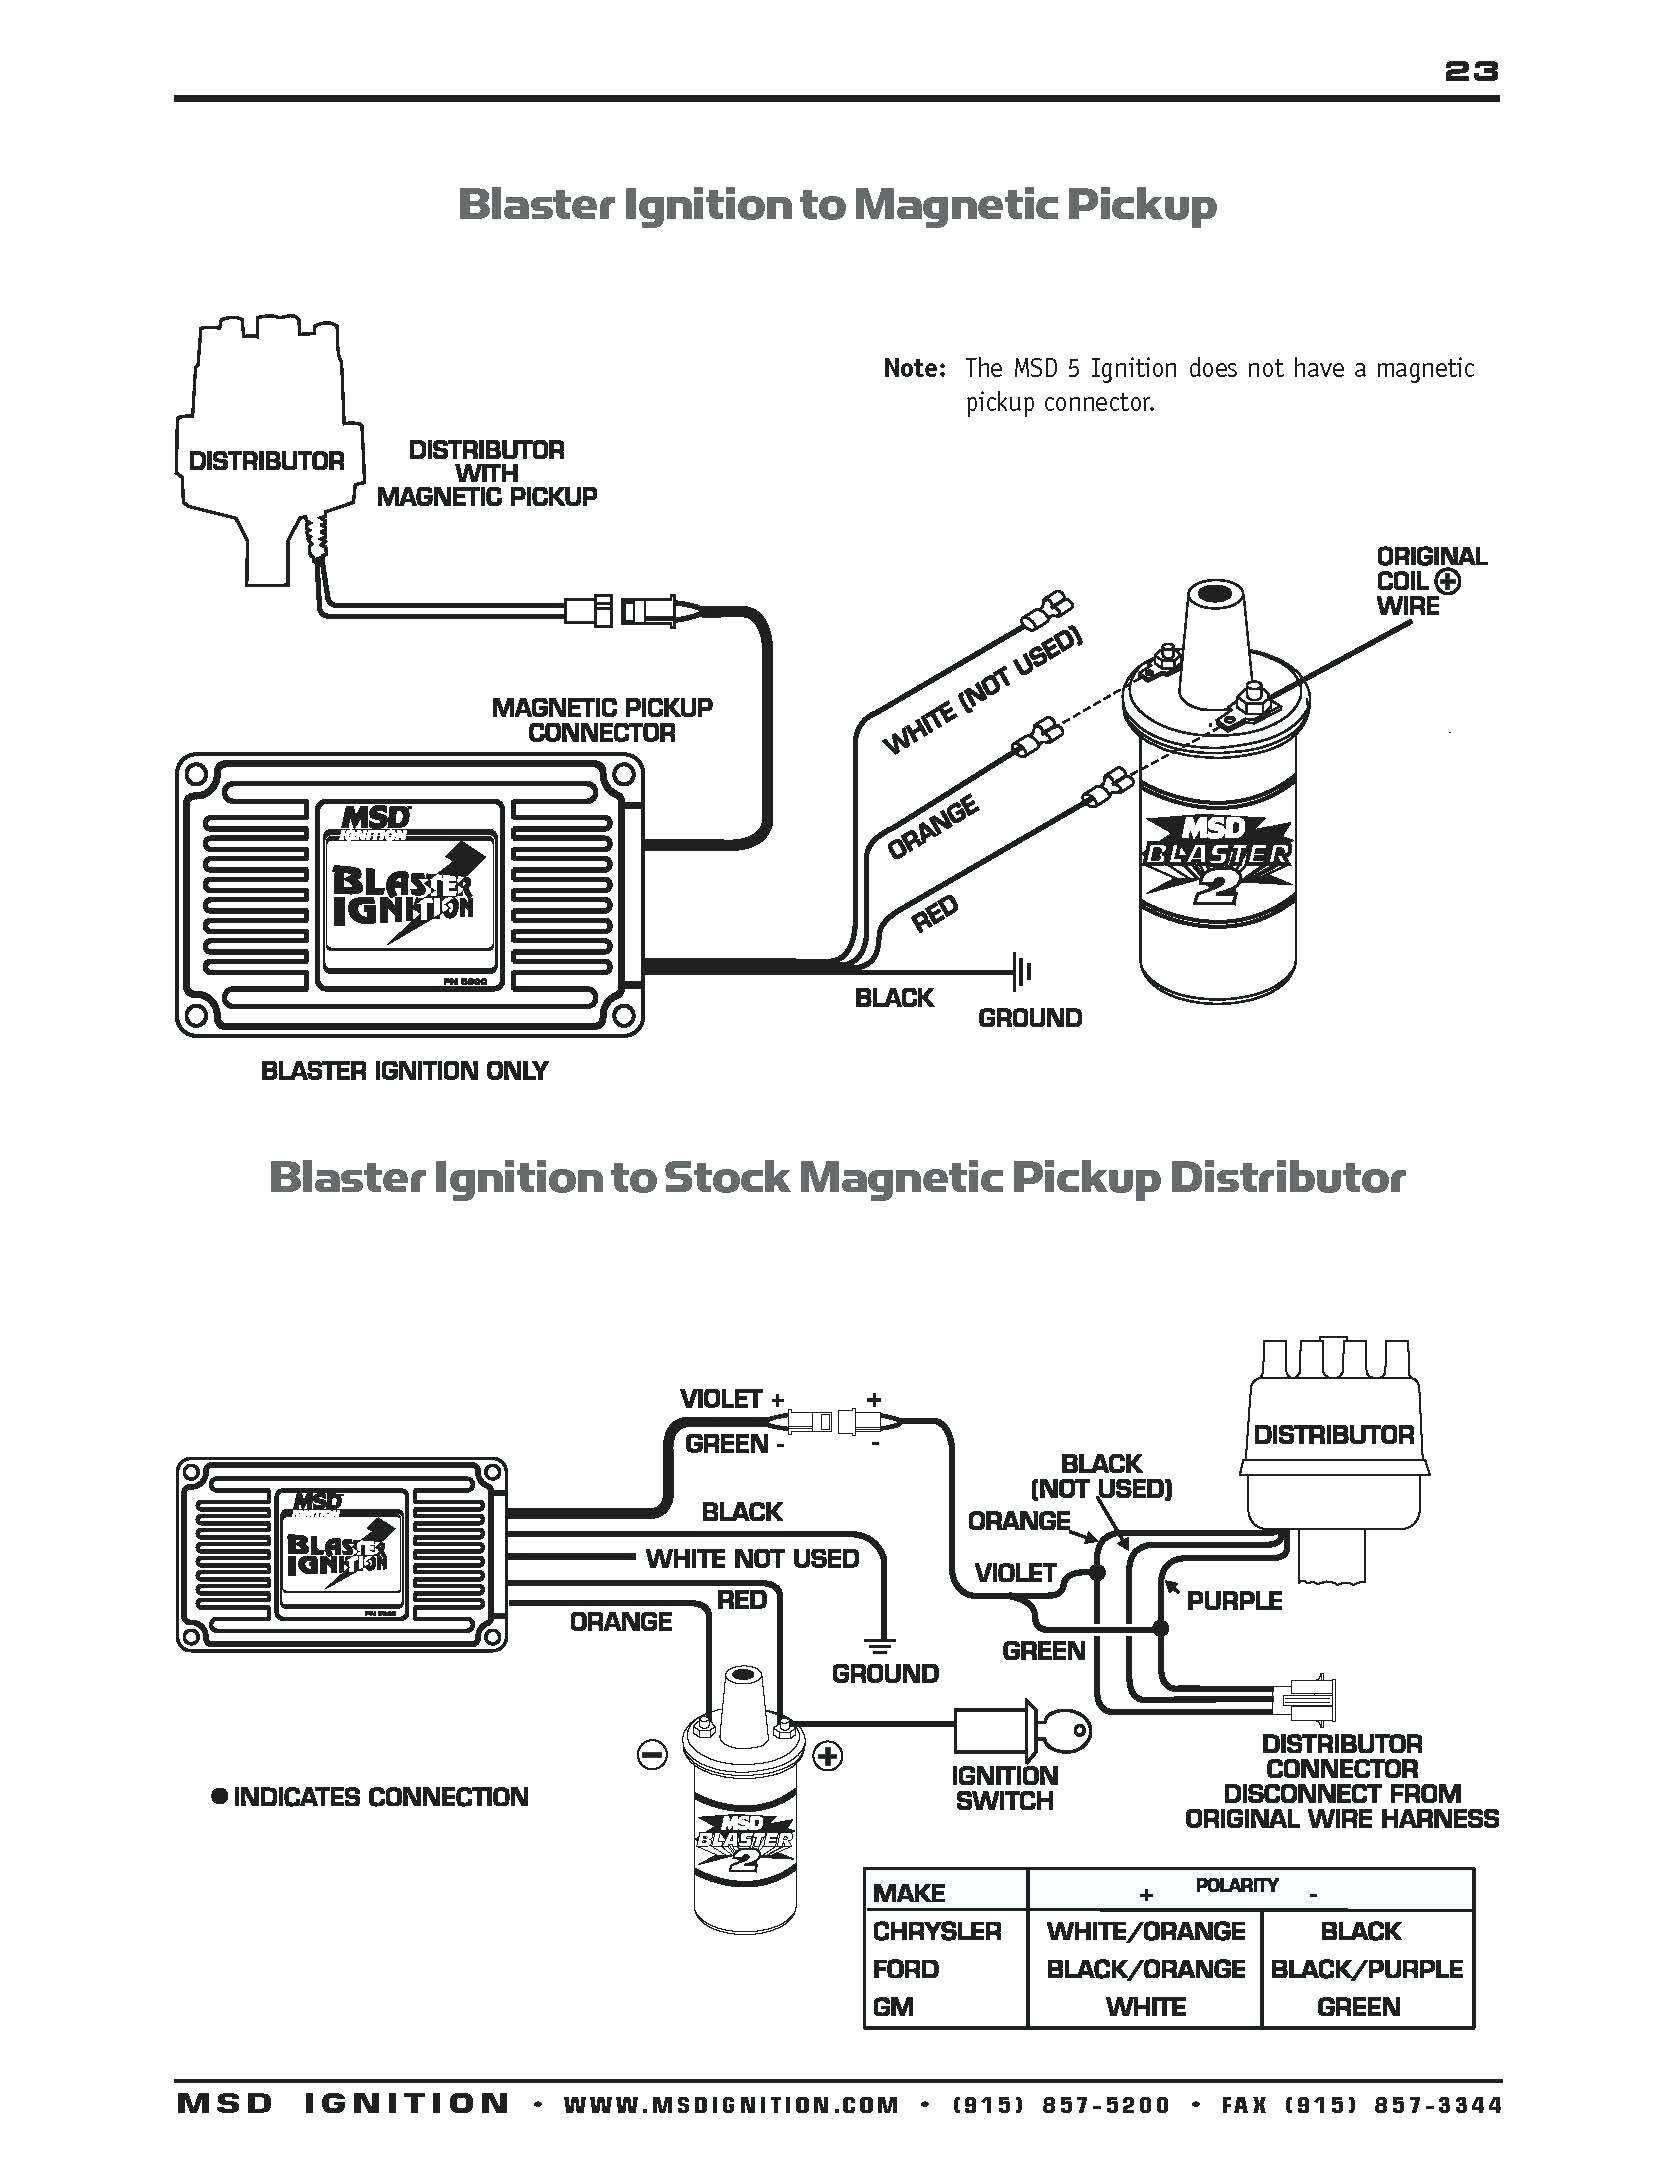 msd ignition wiring diagram 1991 f150 msd ignition 6al 6420 wiring diagram | free wiring diagram msd ignition wiring diagram dual